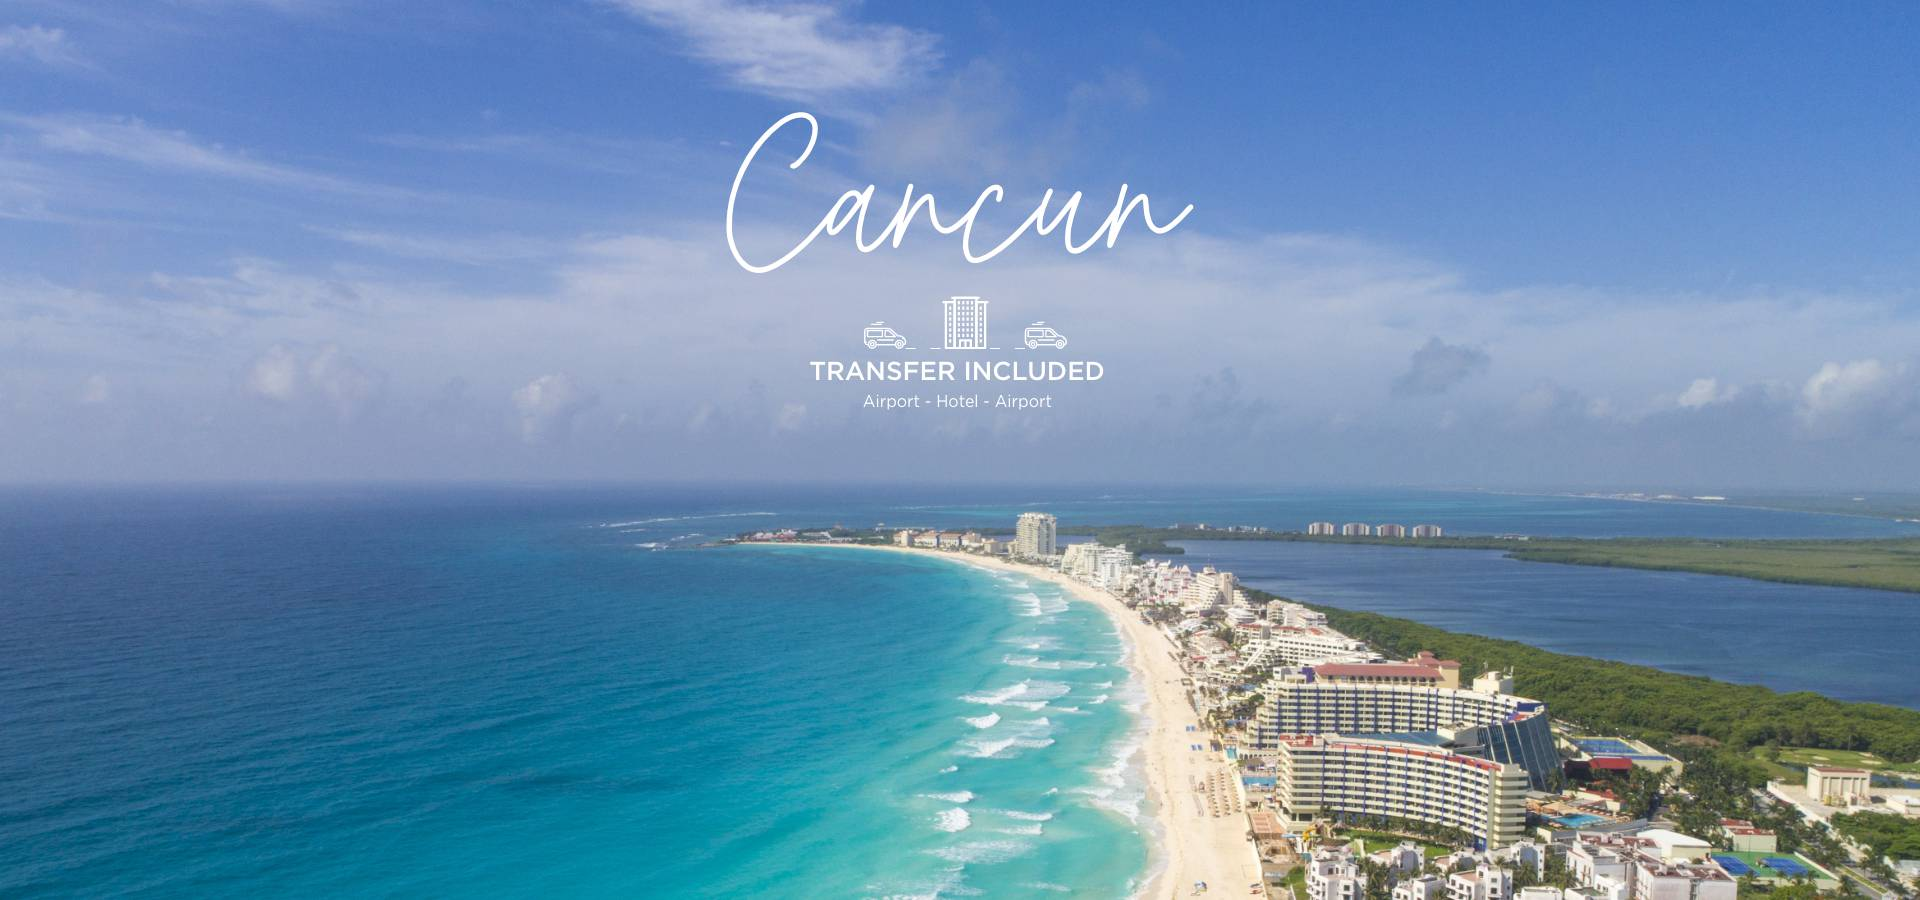 Park Royal - Cancun - {{pagina.nombre}}